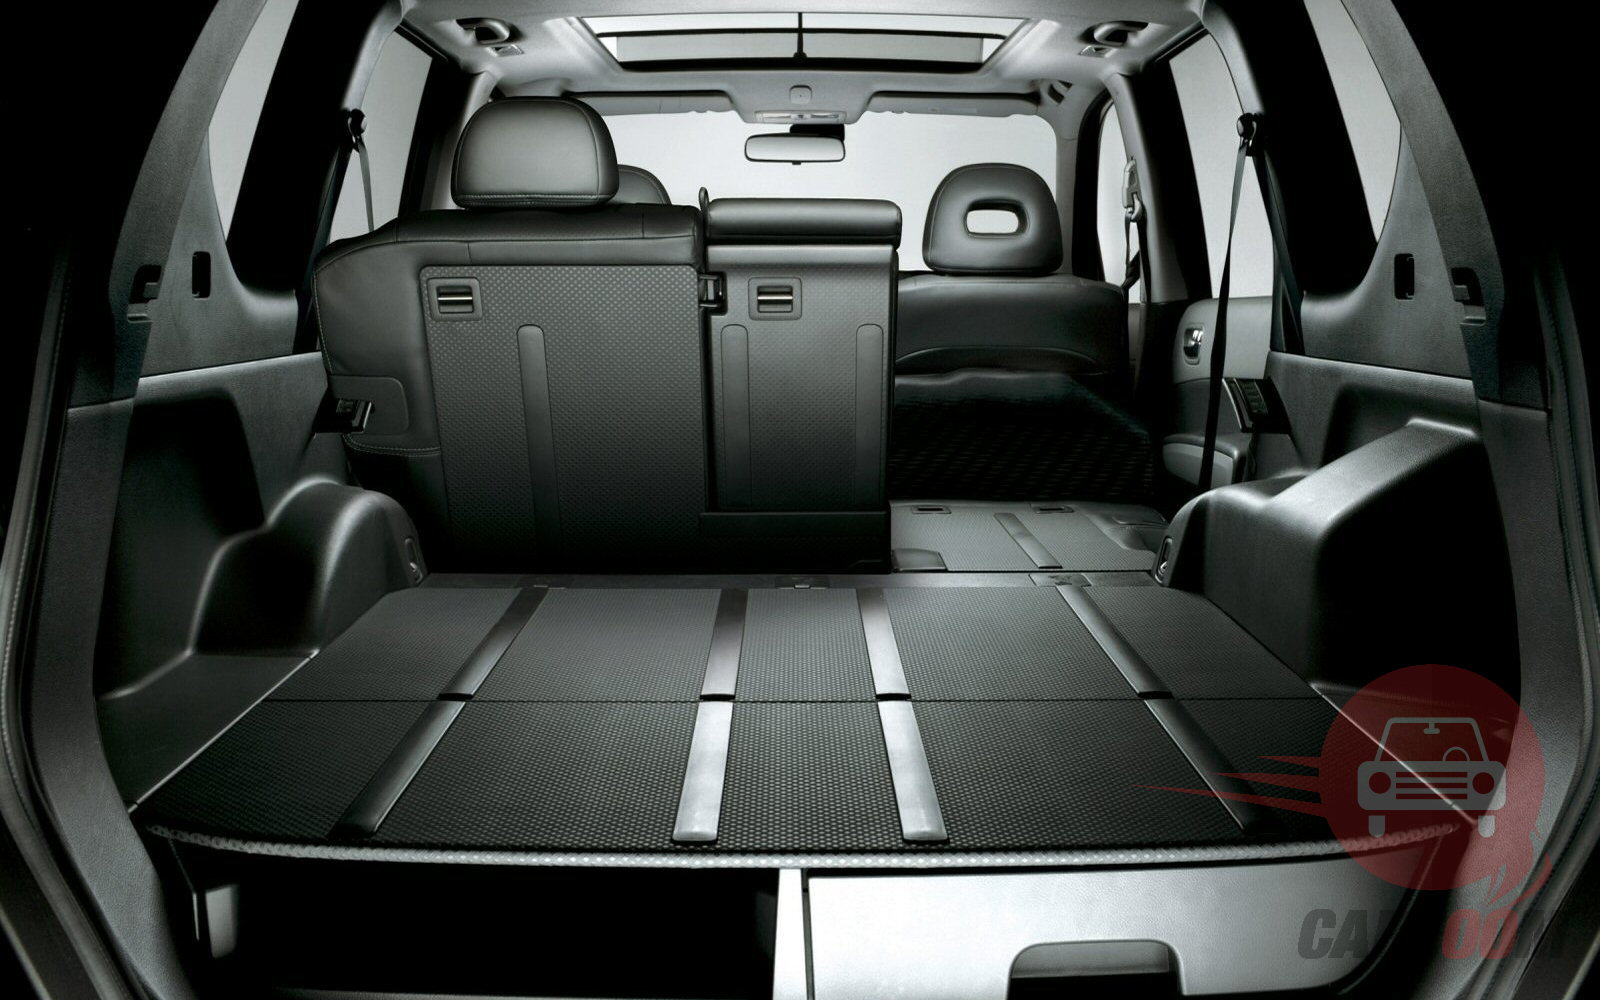 Nissan X Trail Interiors Bootspace